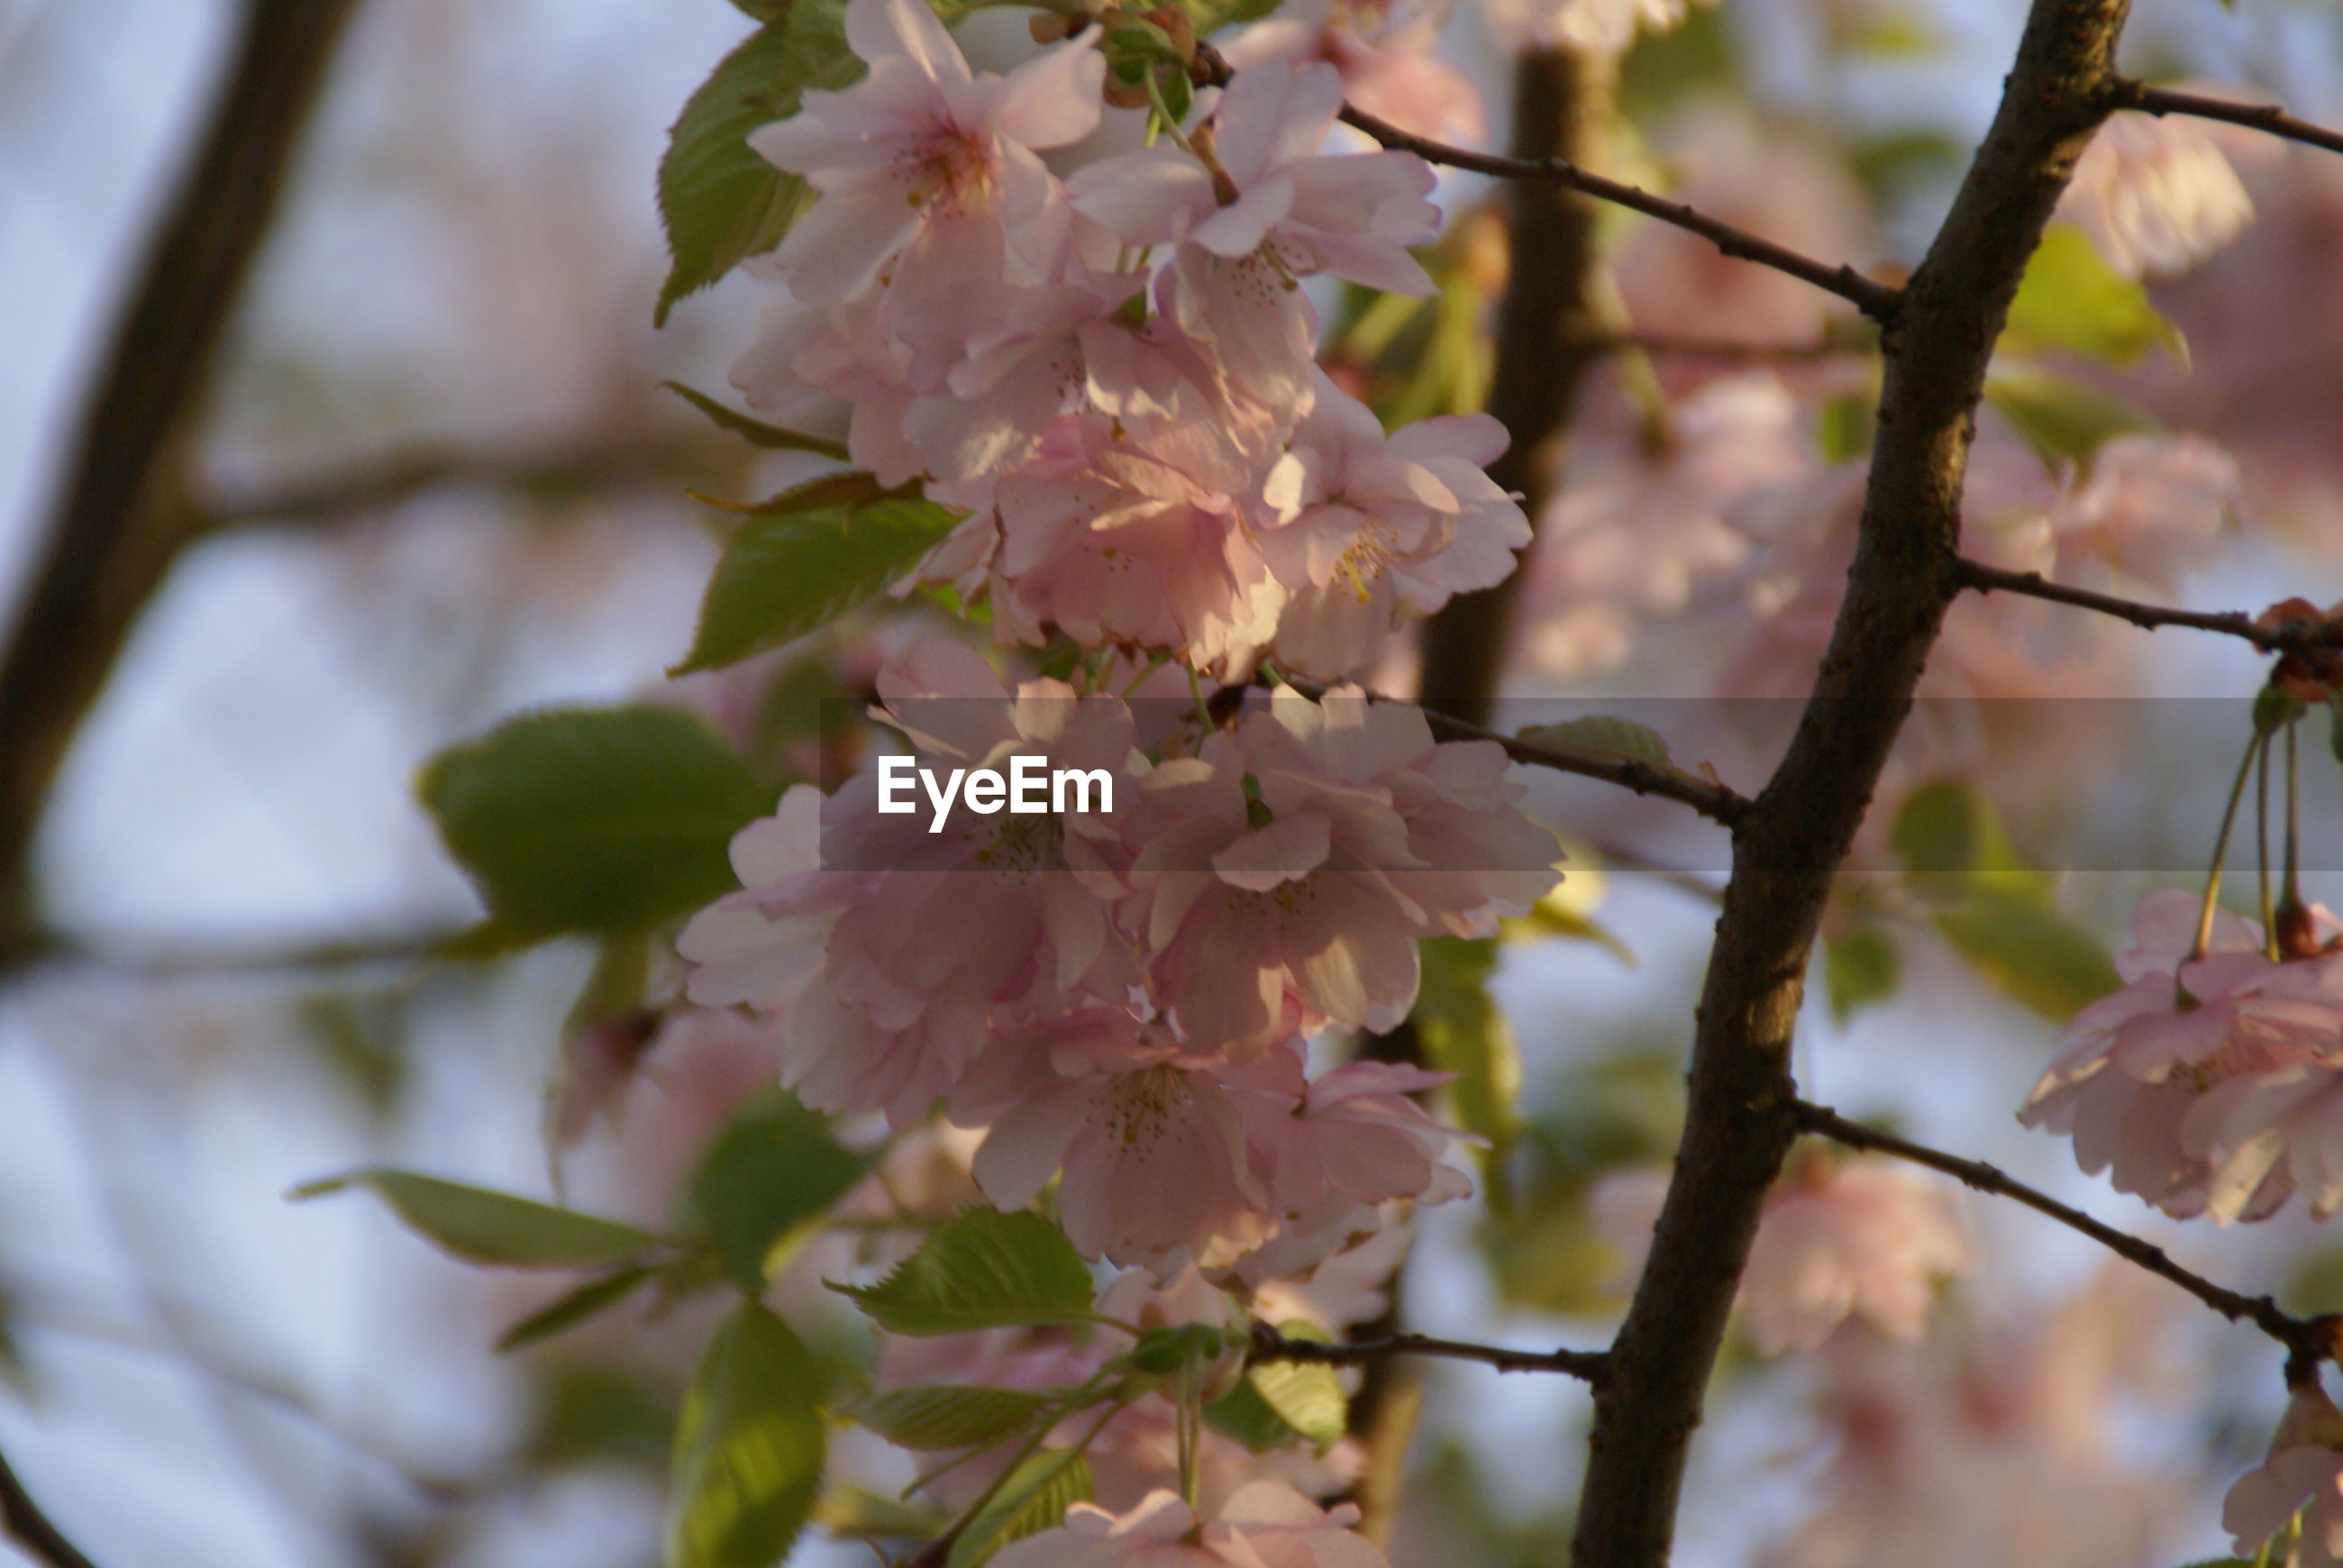 CLOSE-UP OF FLOWERS ON TREE